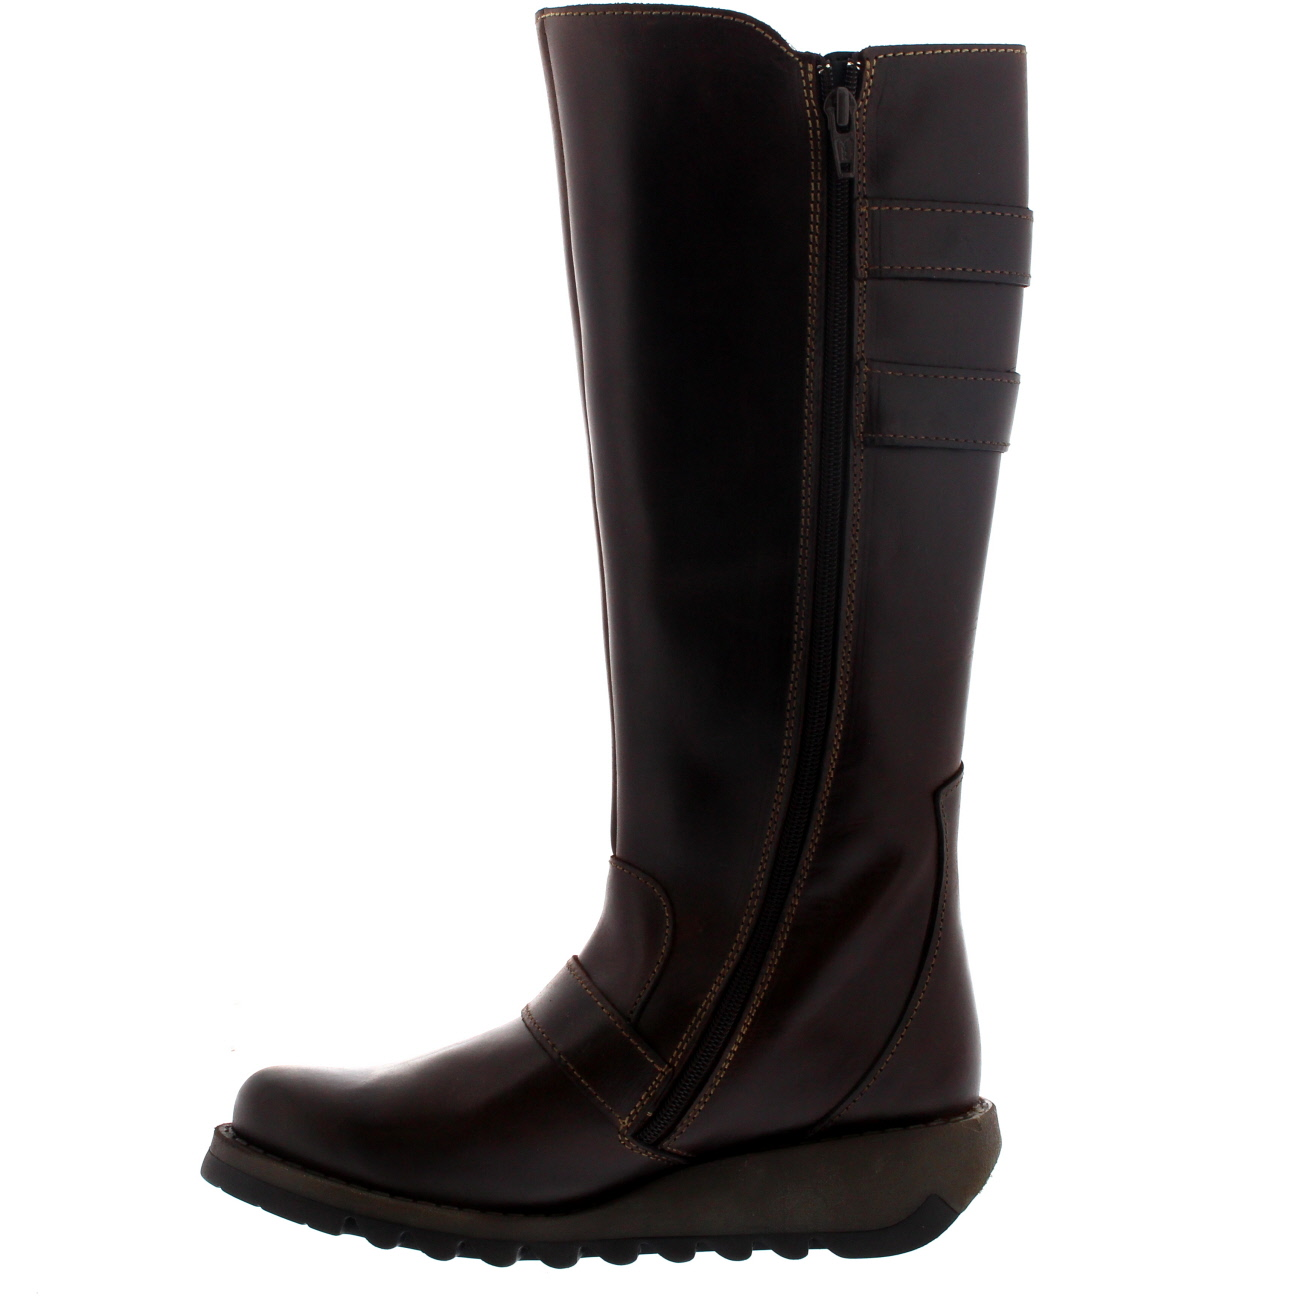 Find great deals on eBay for women wedge boots. Shop with confidence. Skip to main content. eBay: Shop by category. Women's Ankle Boots Wedge Almond Toe Platform Lace Up Fashion Shoes New. $ Buy It Now +$ shipping. + Sold. Tell us what you think - opens in new window or tab.